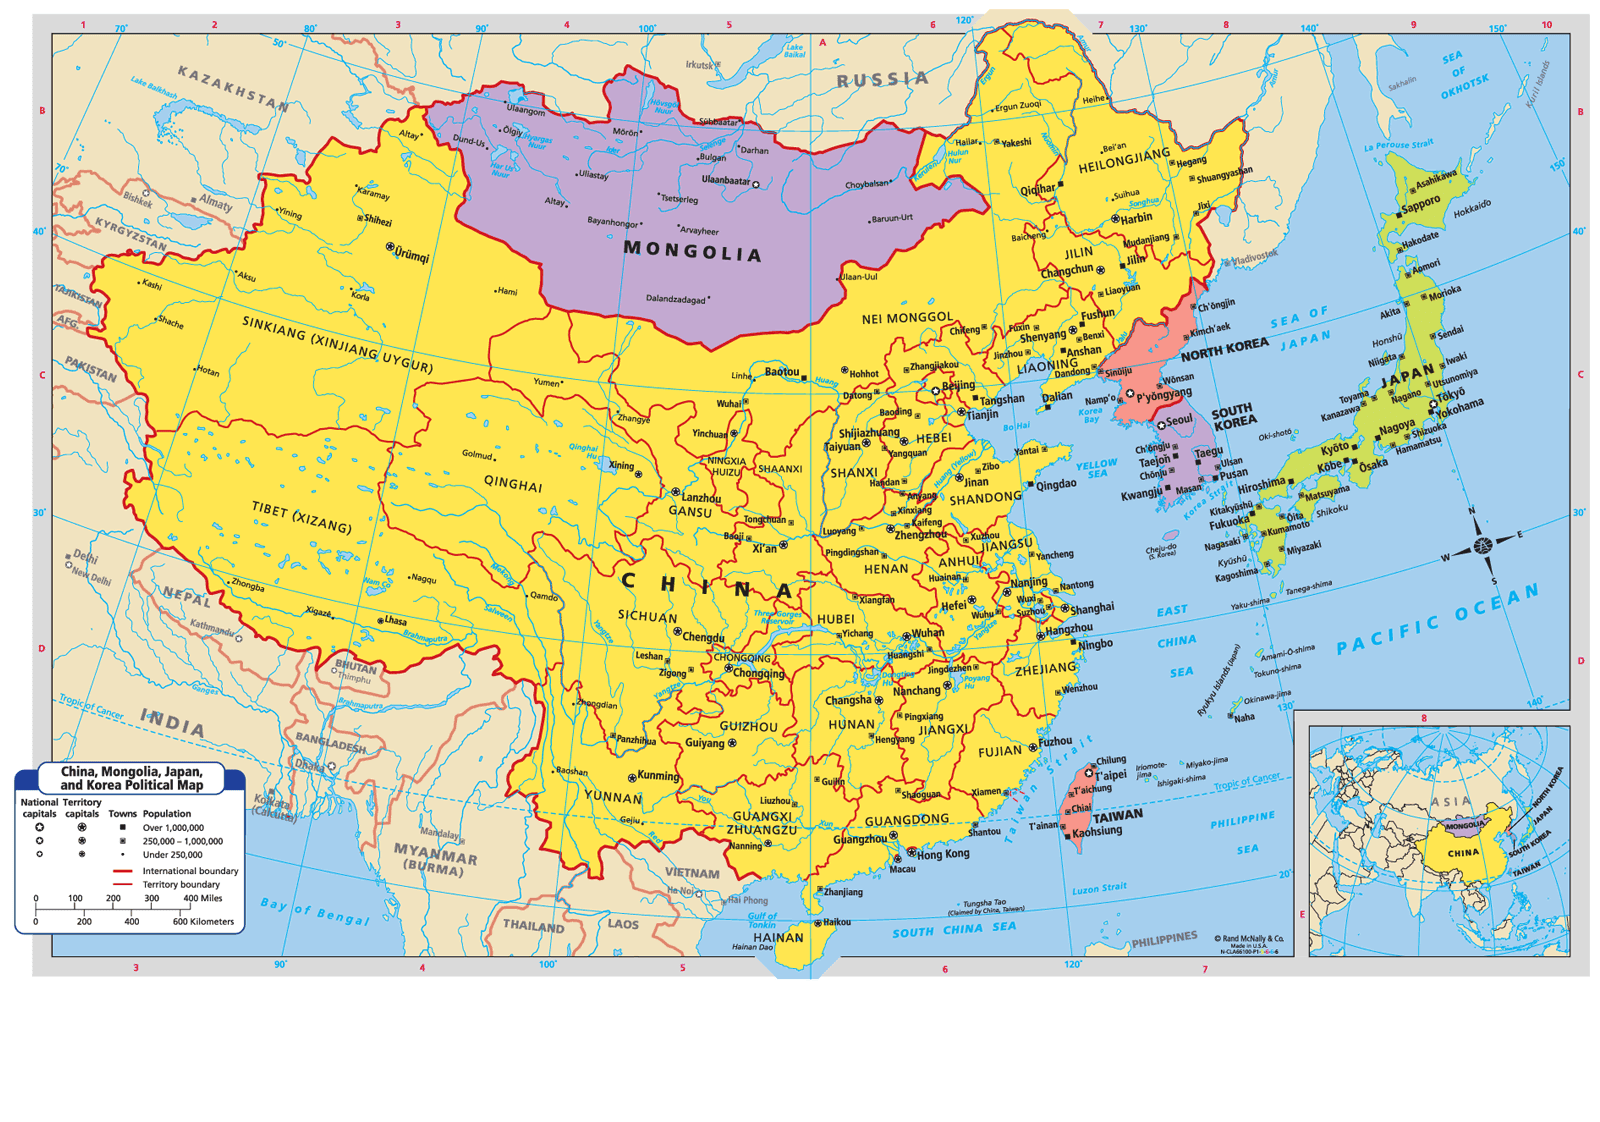 Maps China Mongolia The Koreas And Japan - Japan map korea